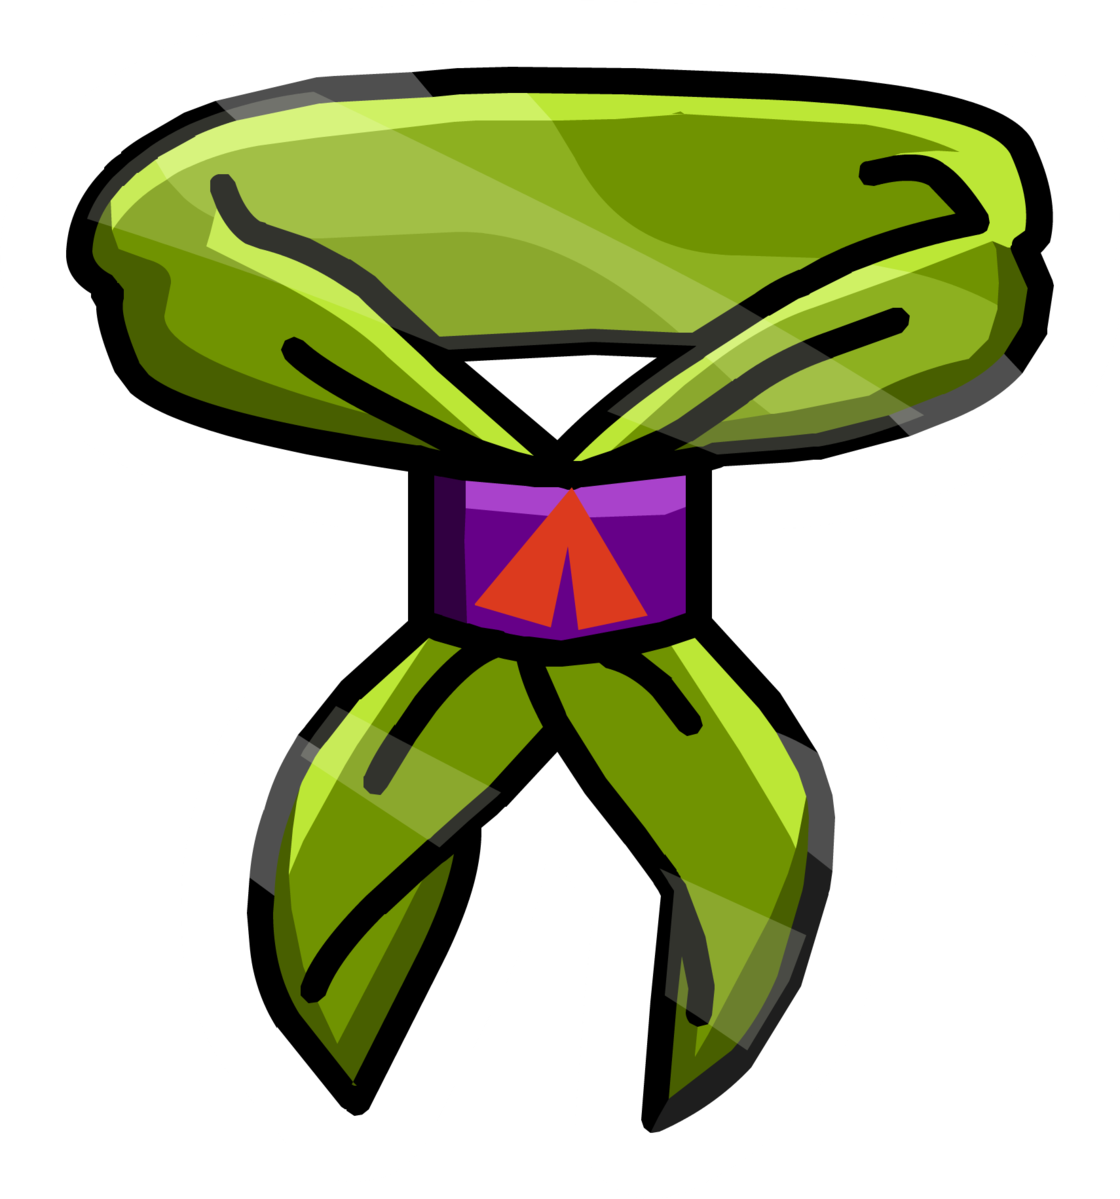 Scouting neckerchief scarf computer. Clipart chair animated